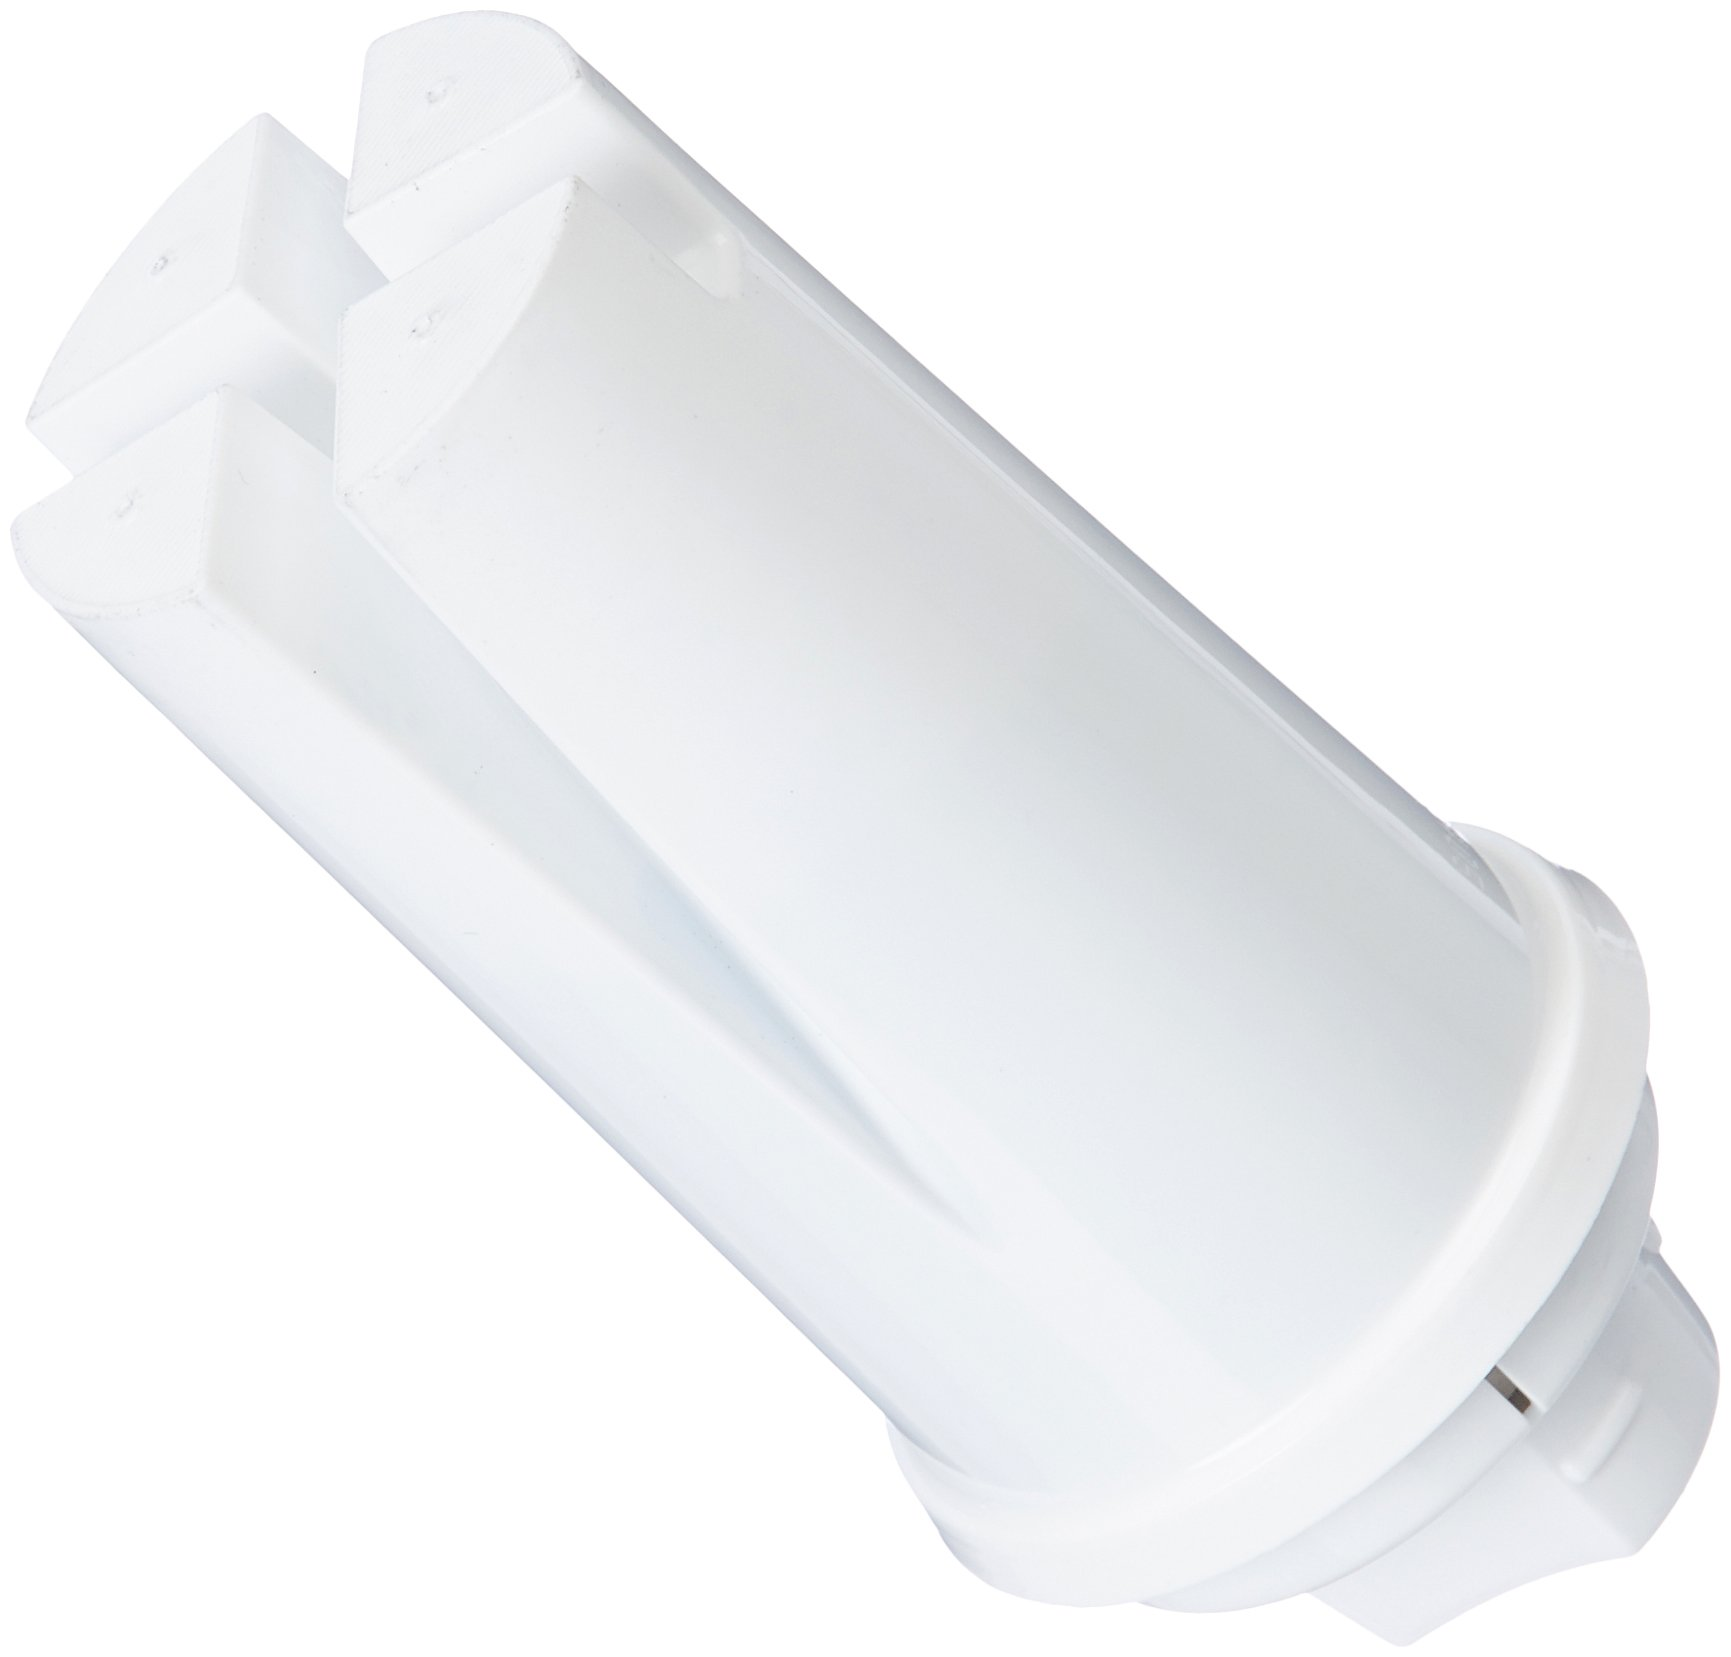 AmazonBasics Replacement Water Filters for AmazonBasics & Brita Pitchers - 6-Pack by AmazonBasics (Image #2)